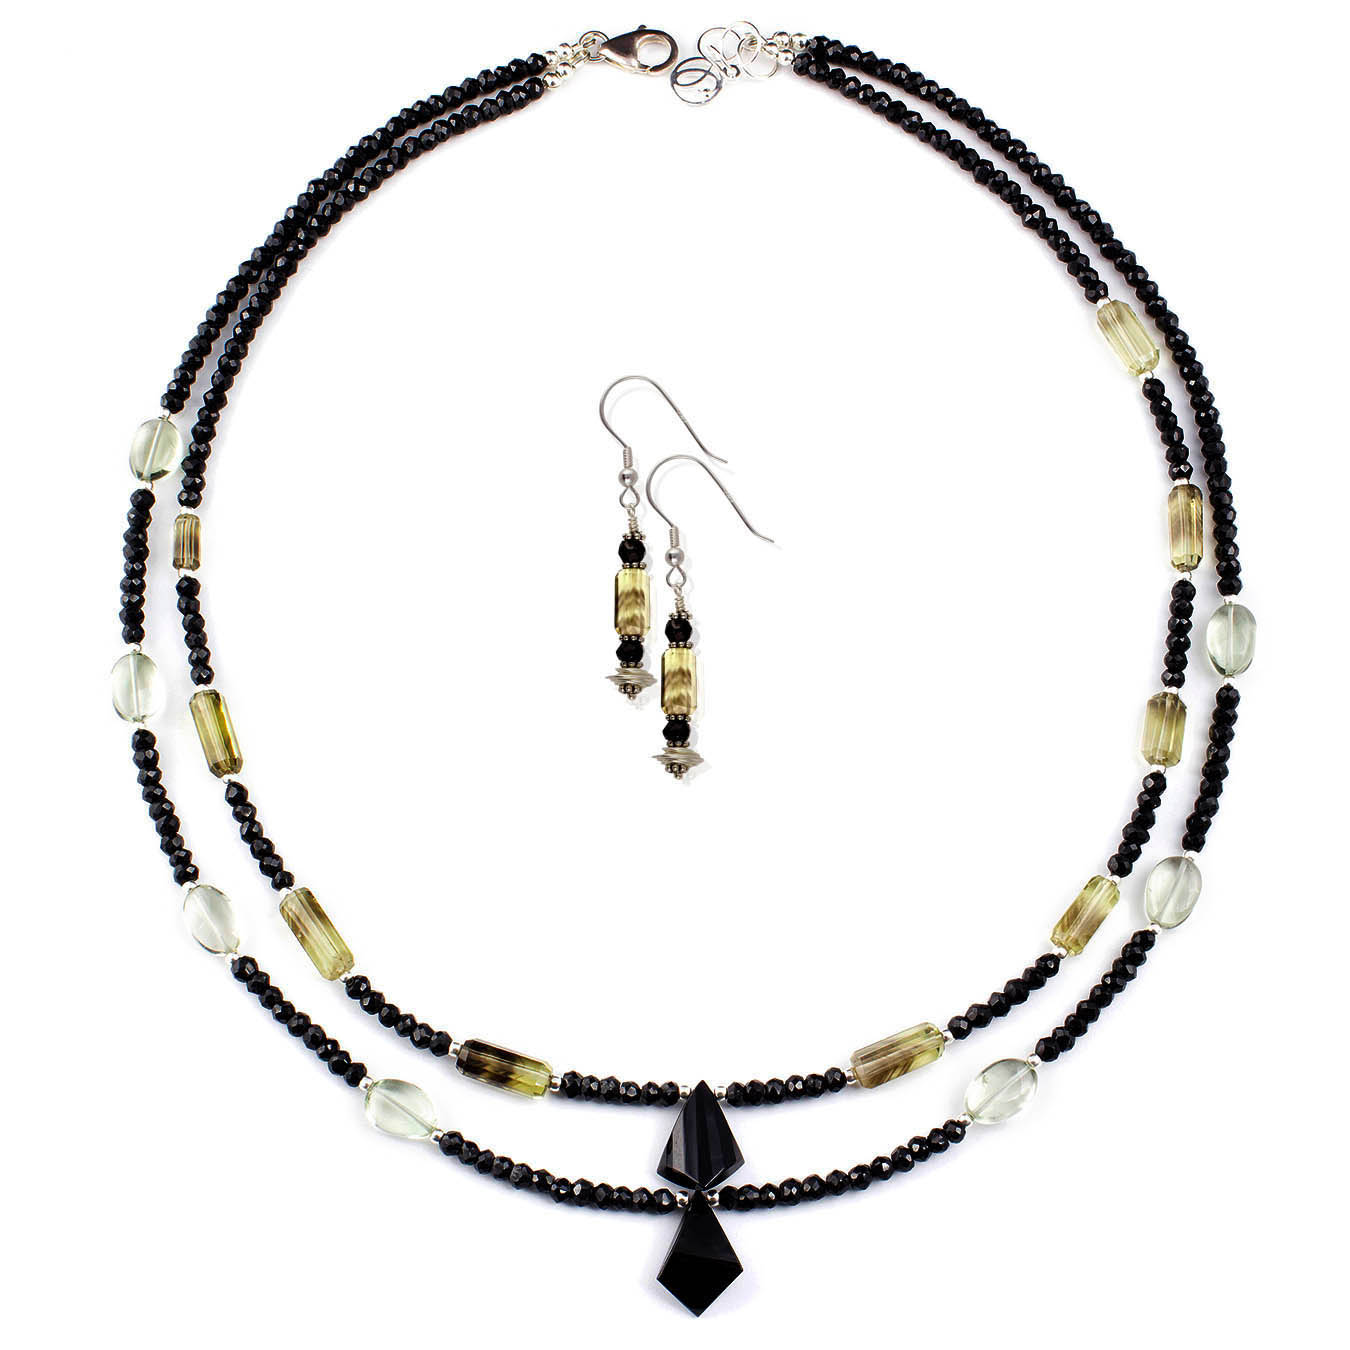 Artisan crafted jewelry made with spinel, quartz and green amethyst